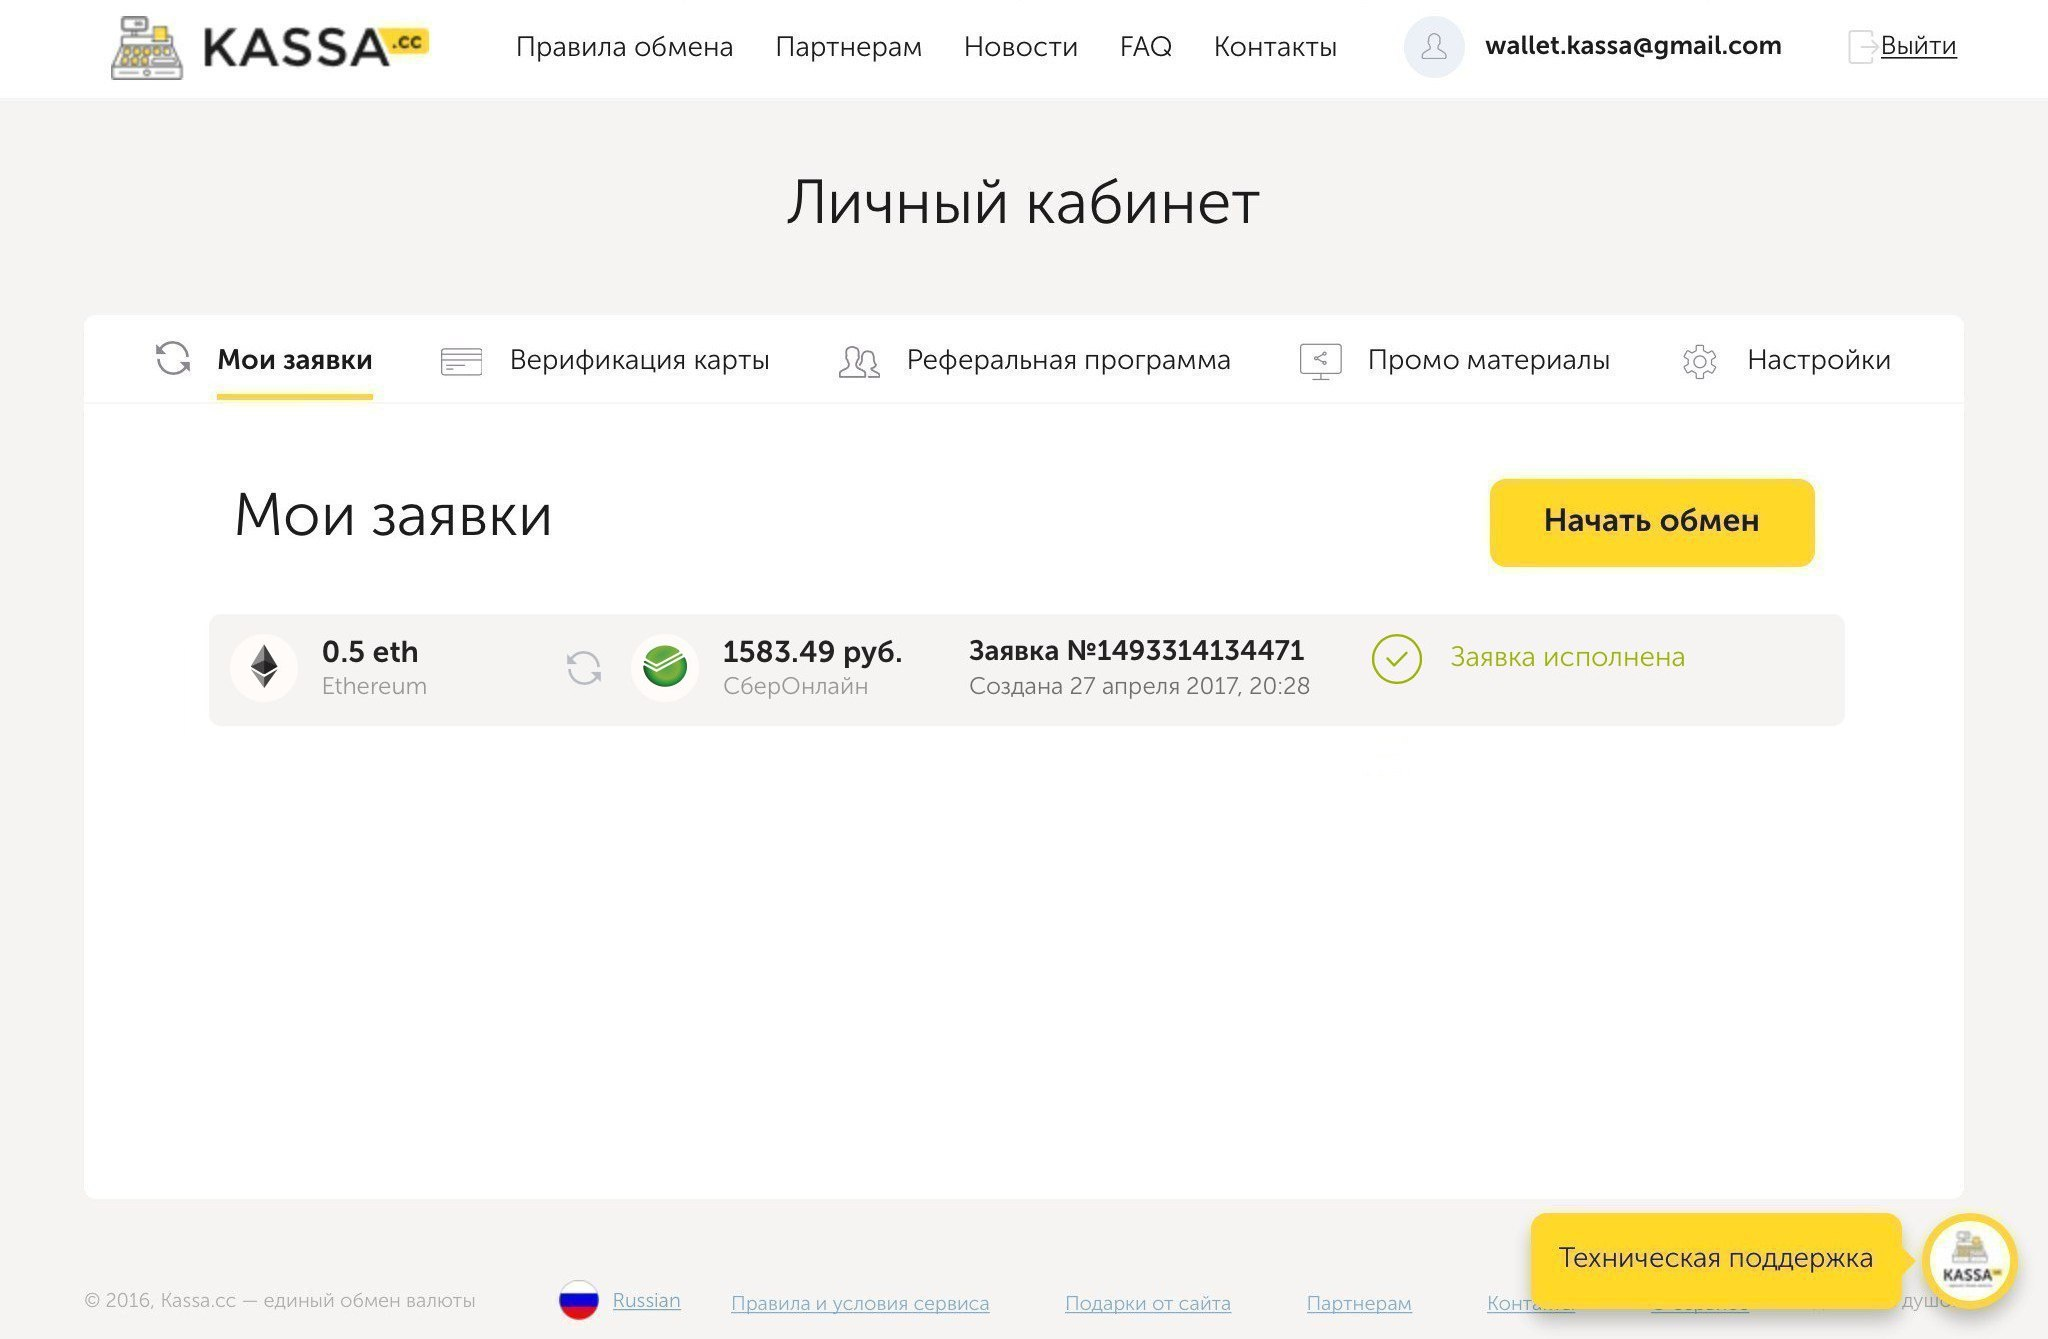 Kassa.cc is a single currency exchange. The conclusion of Ethereum on the card of Sberbank